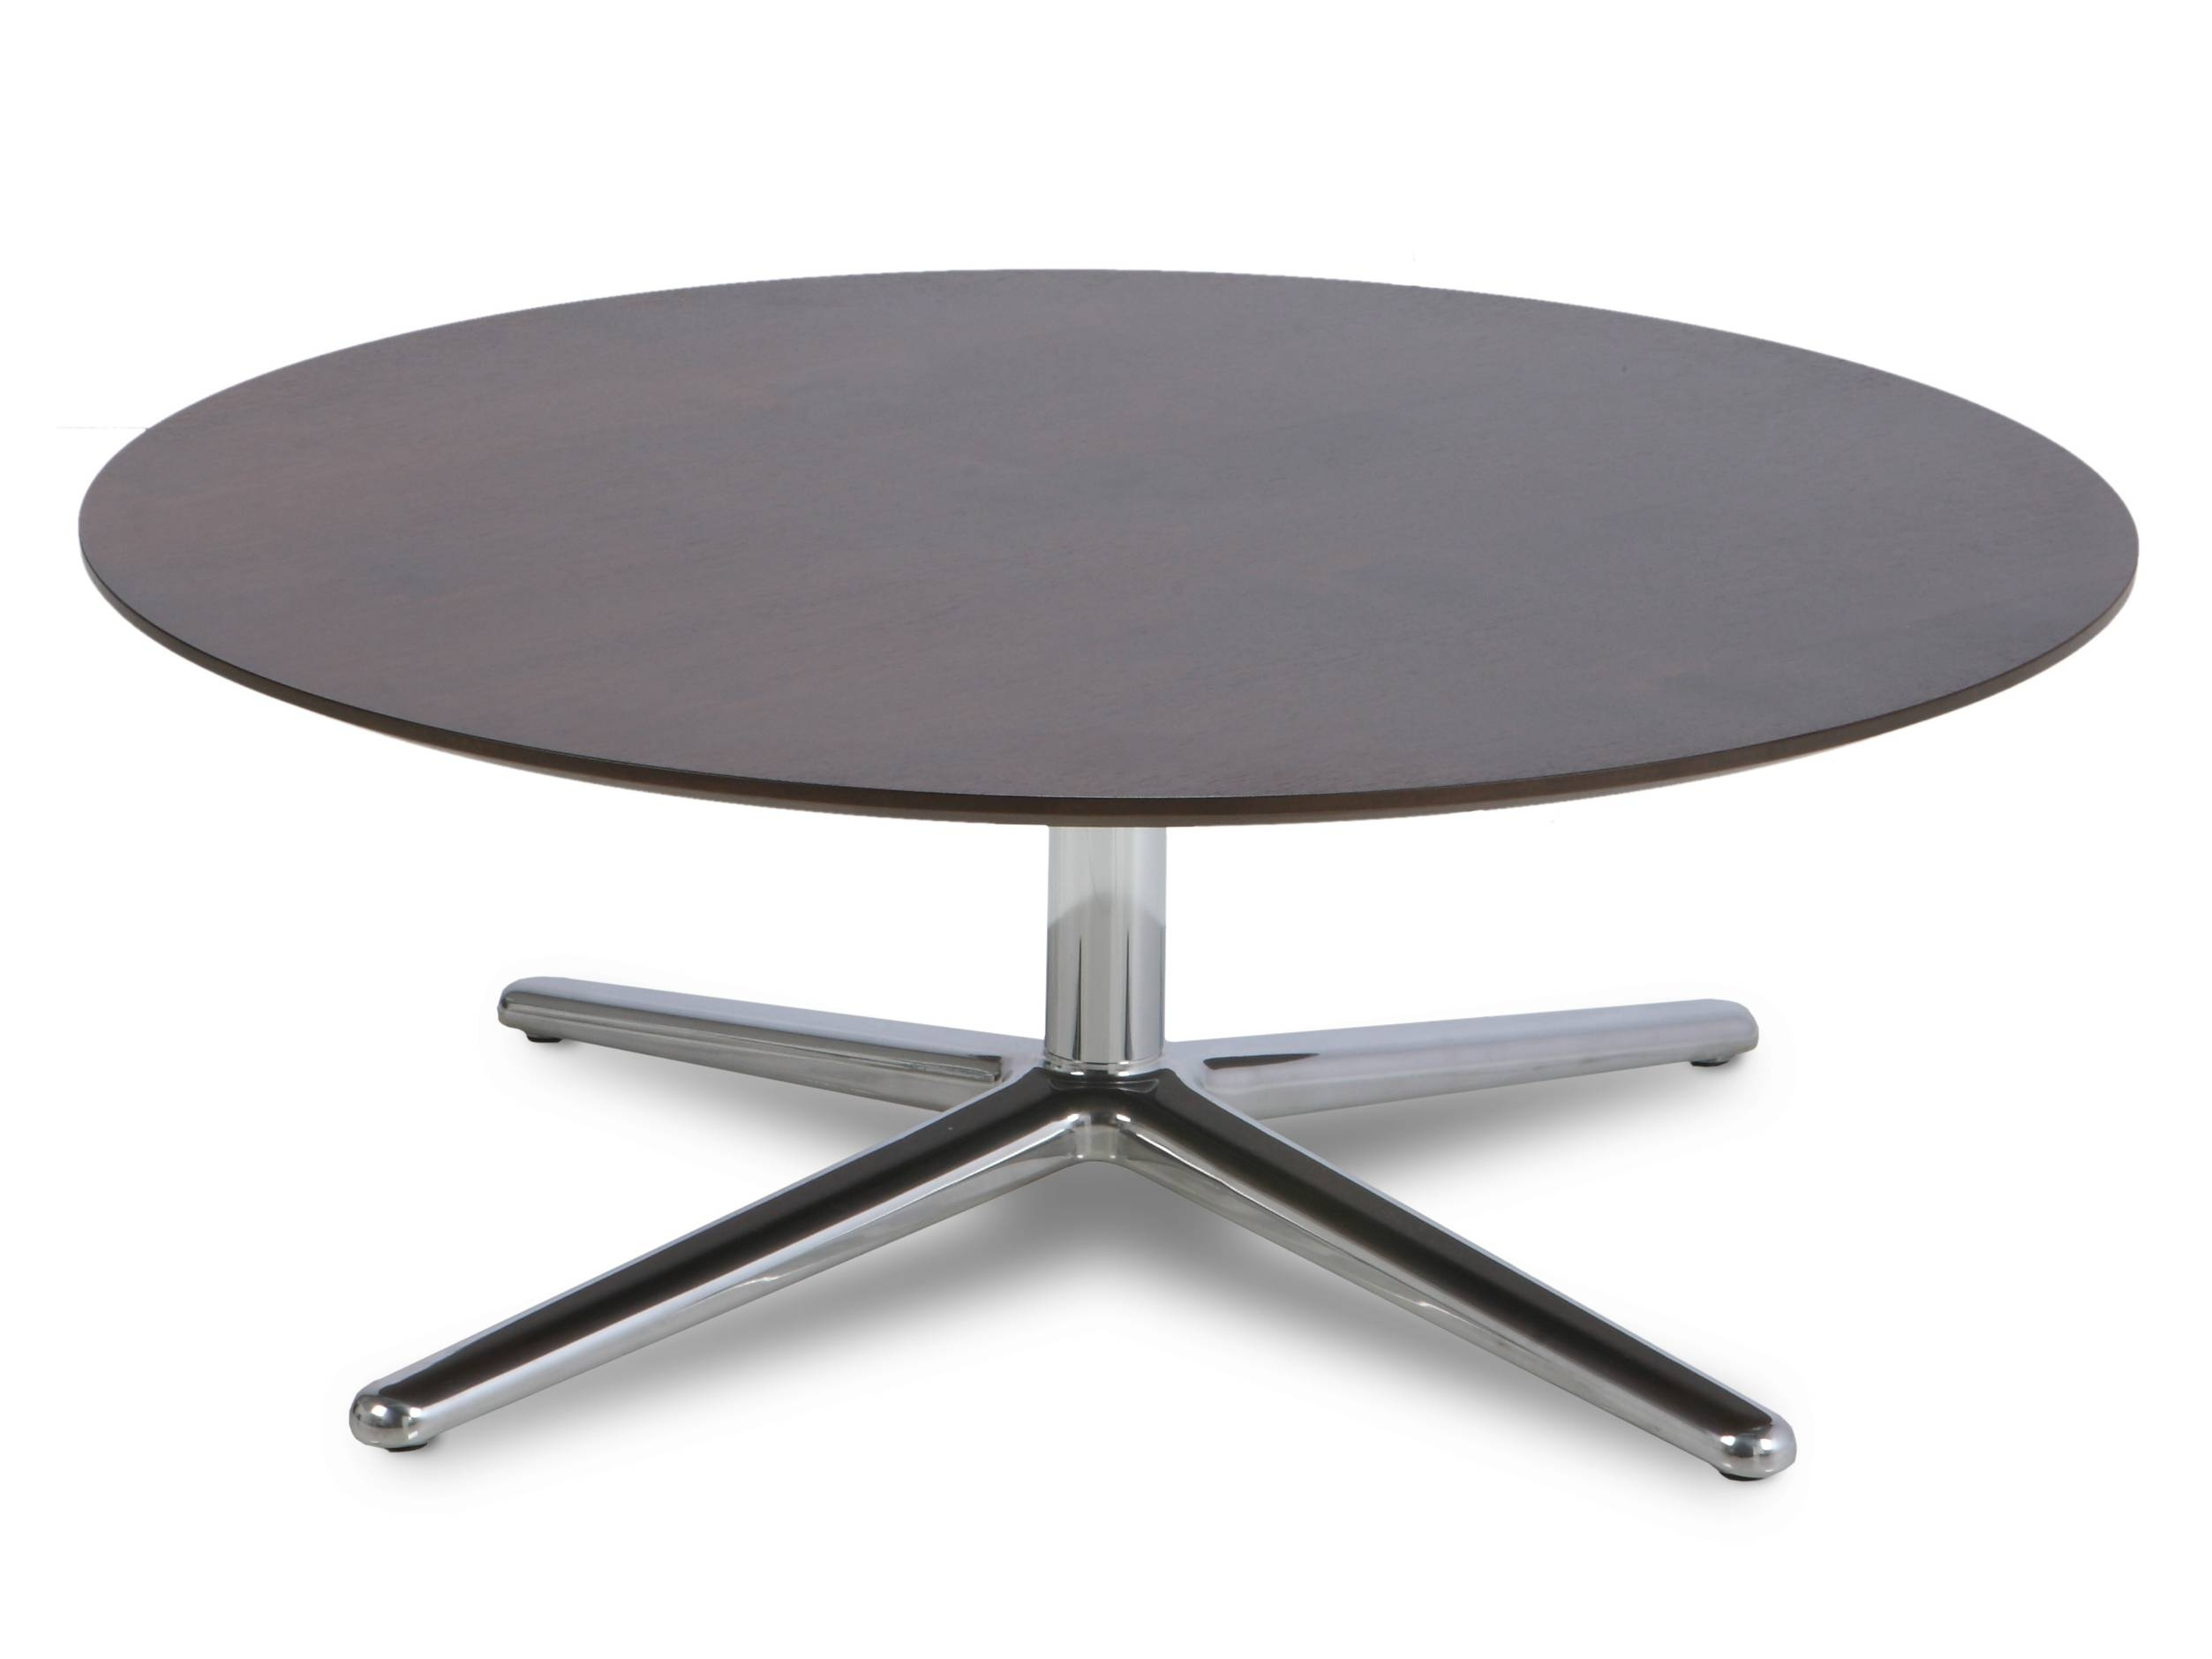 30 Best Ideas of Chrome Leg Coffee Tables